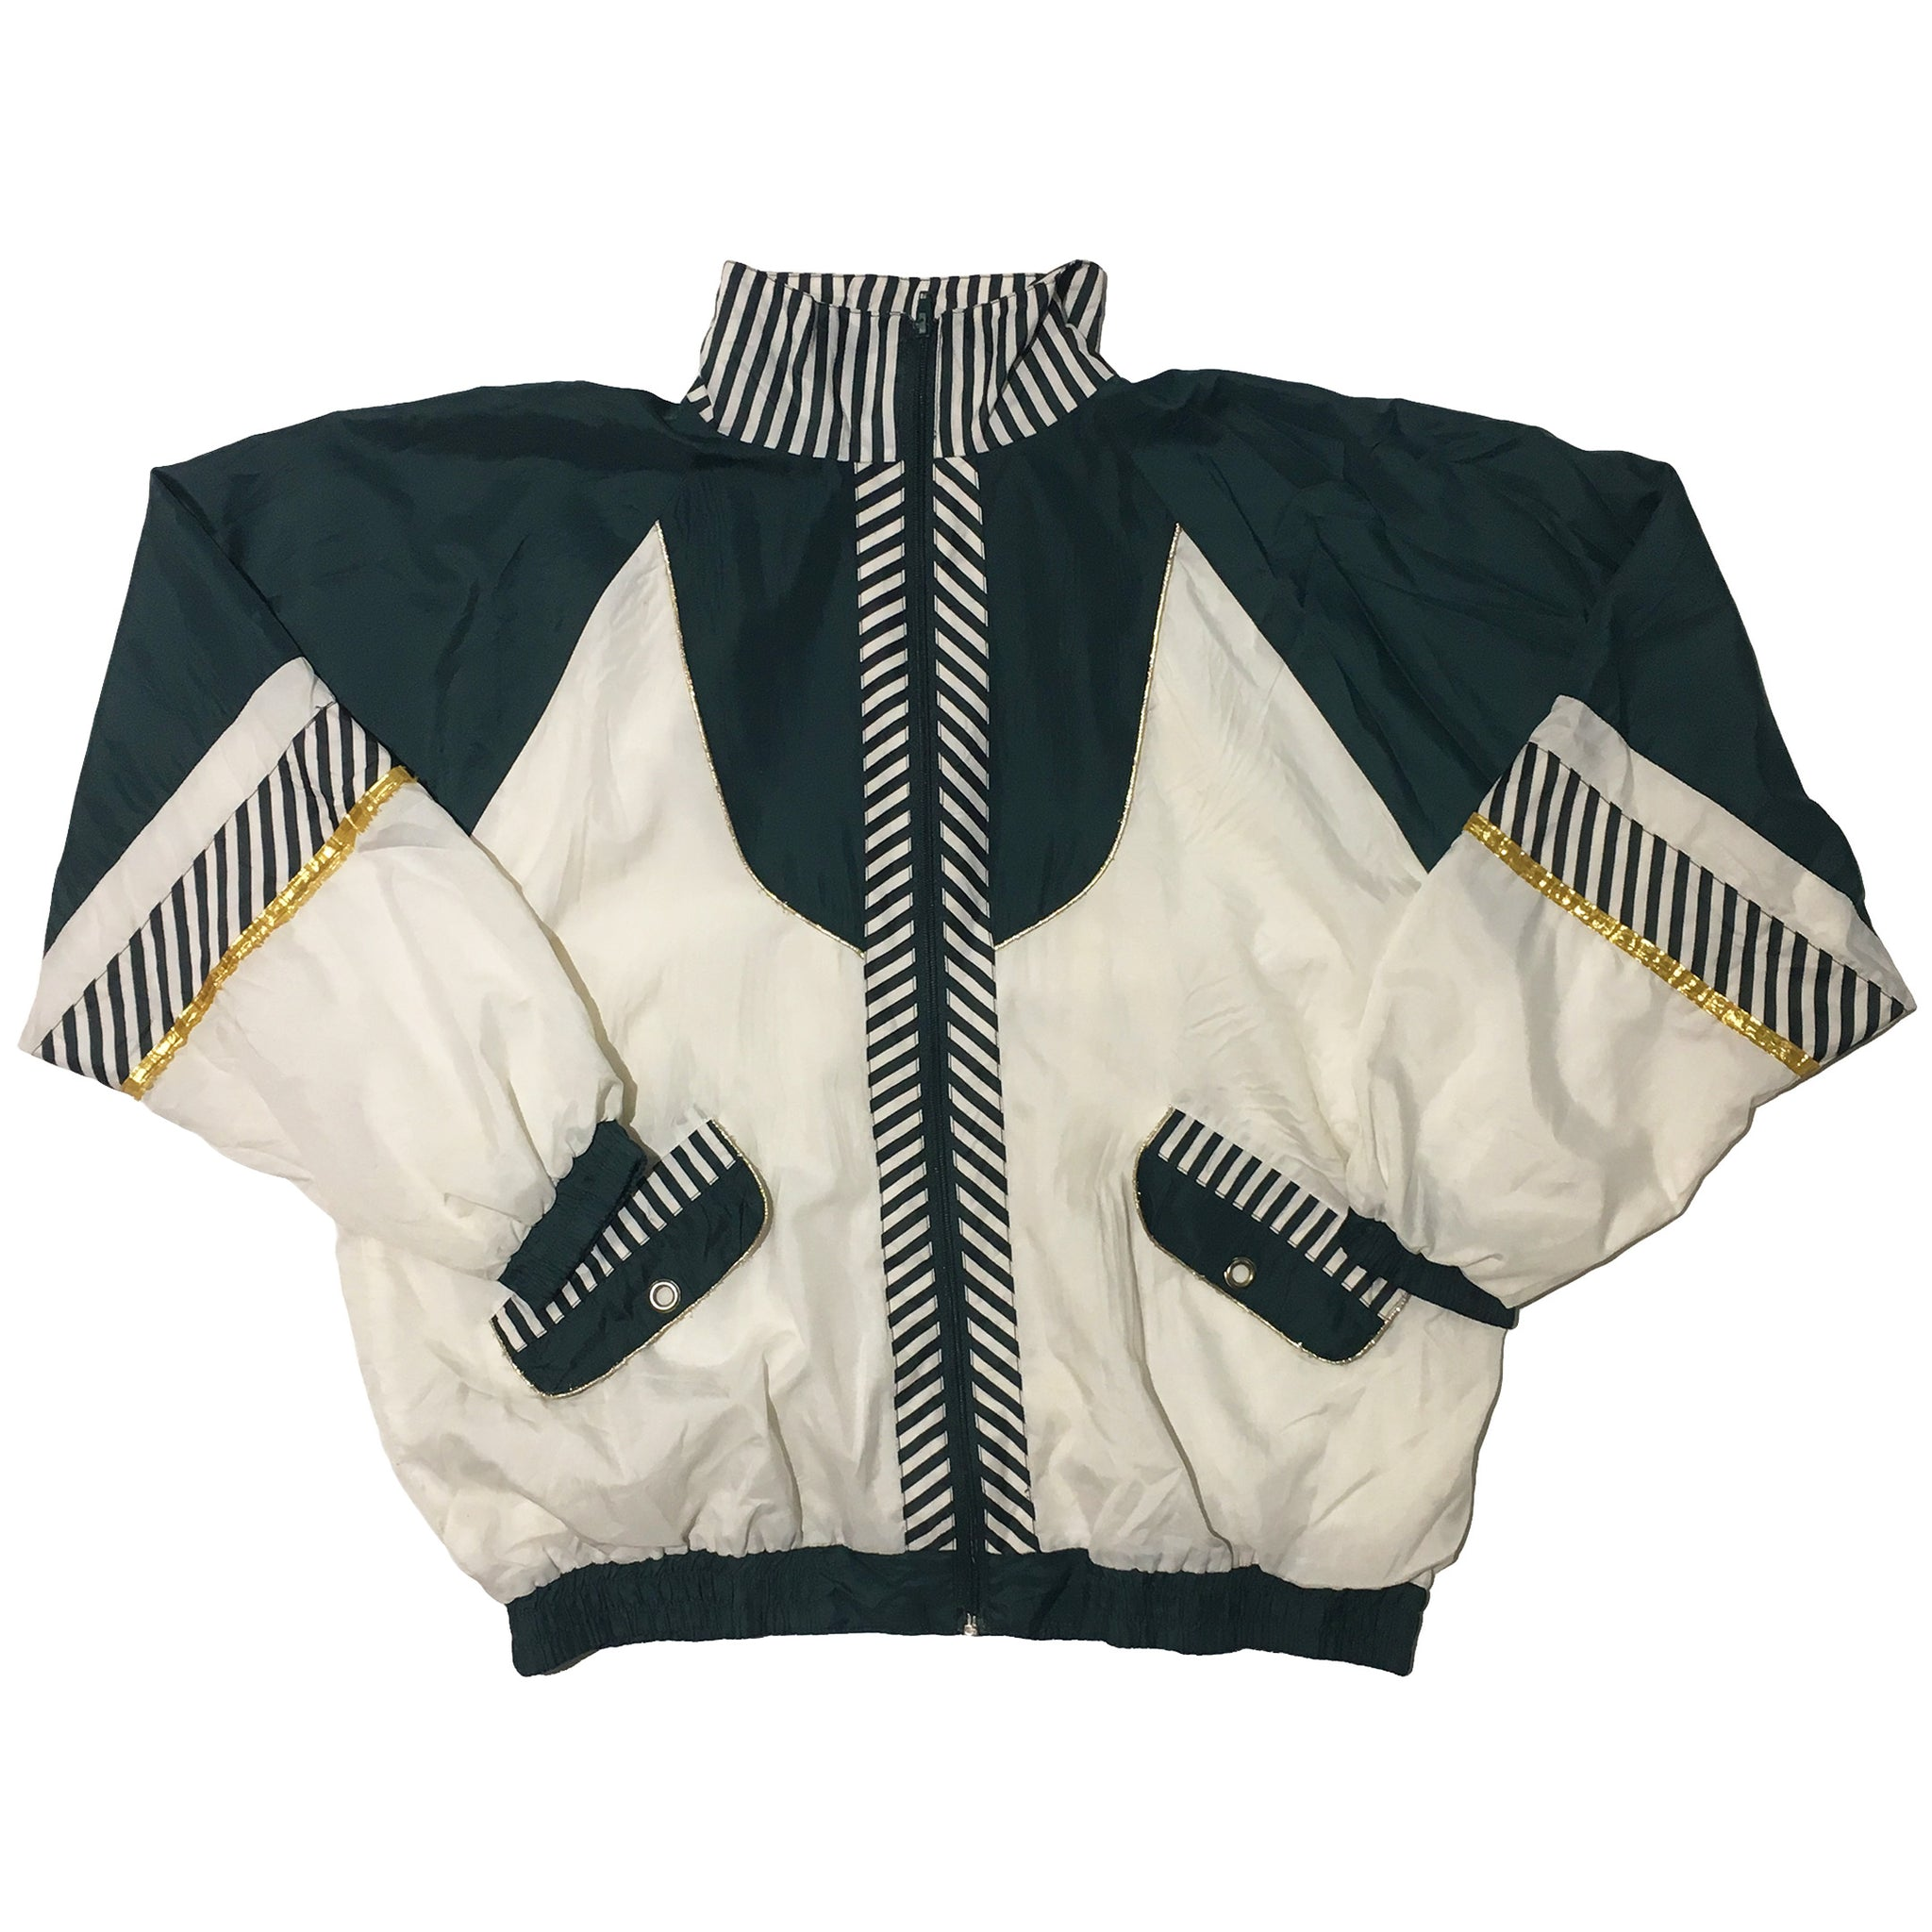 White & Green Stripe Jacket with Gold Accents